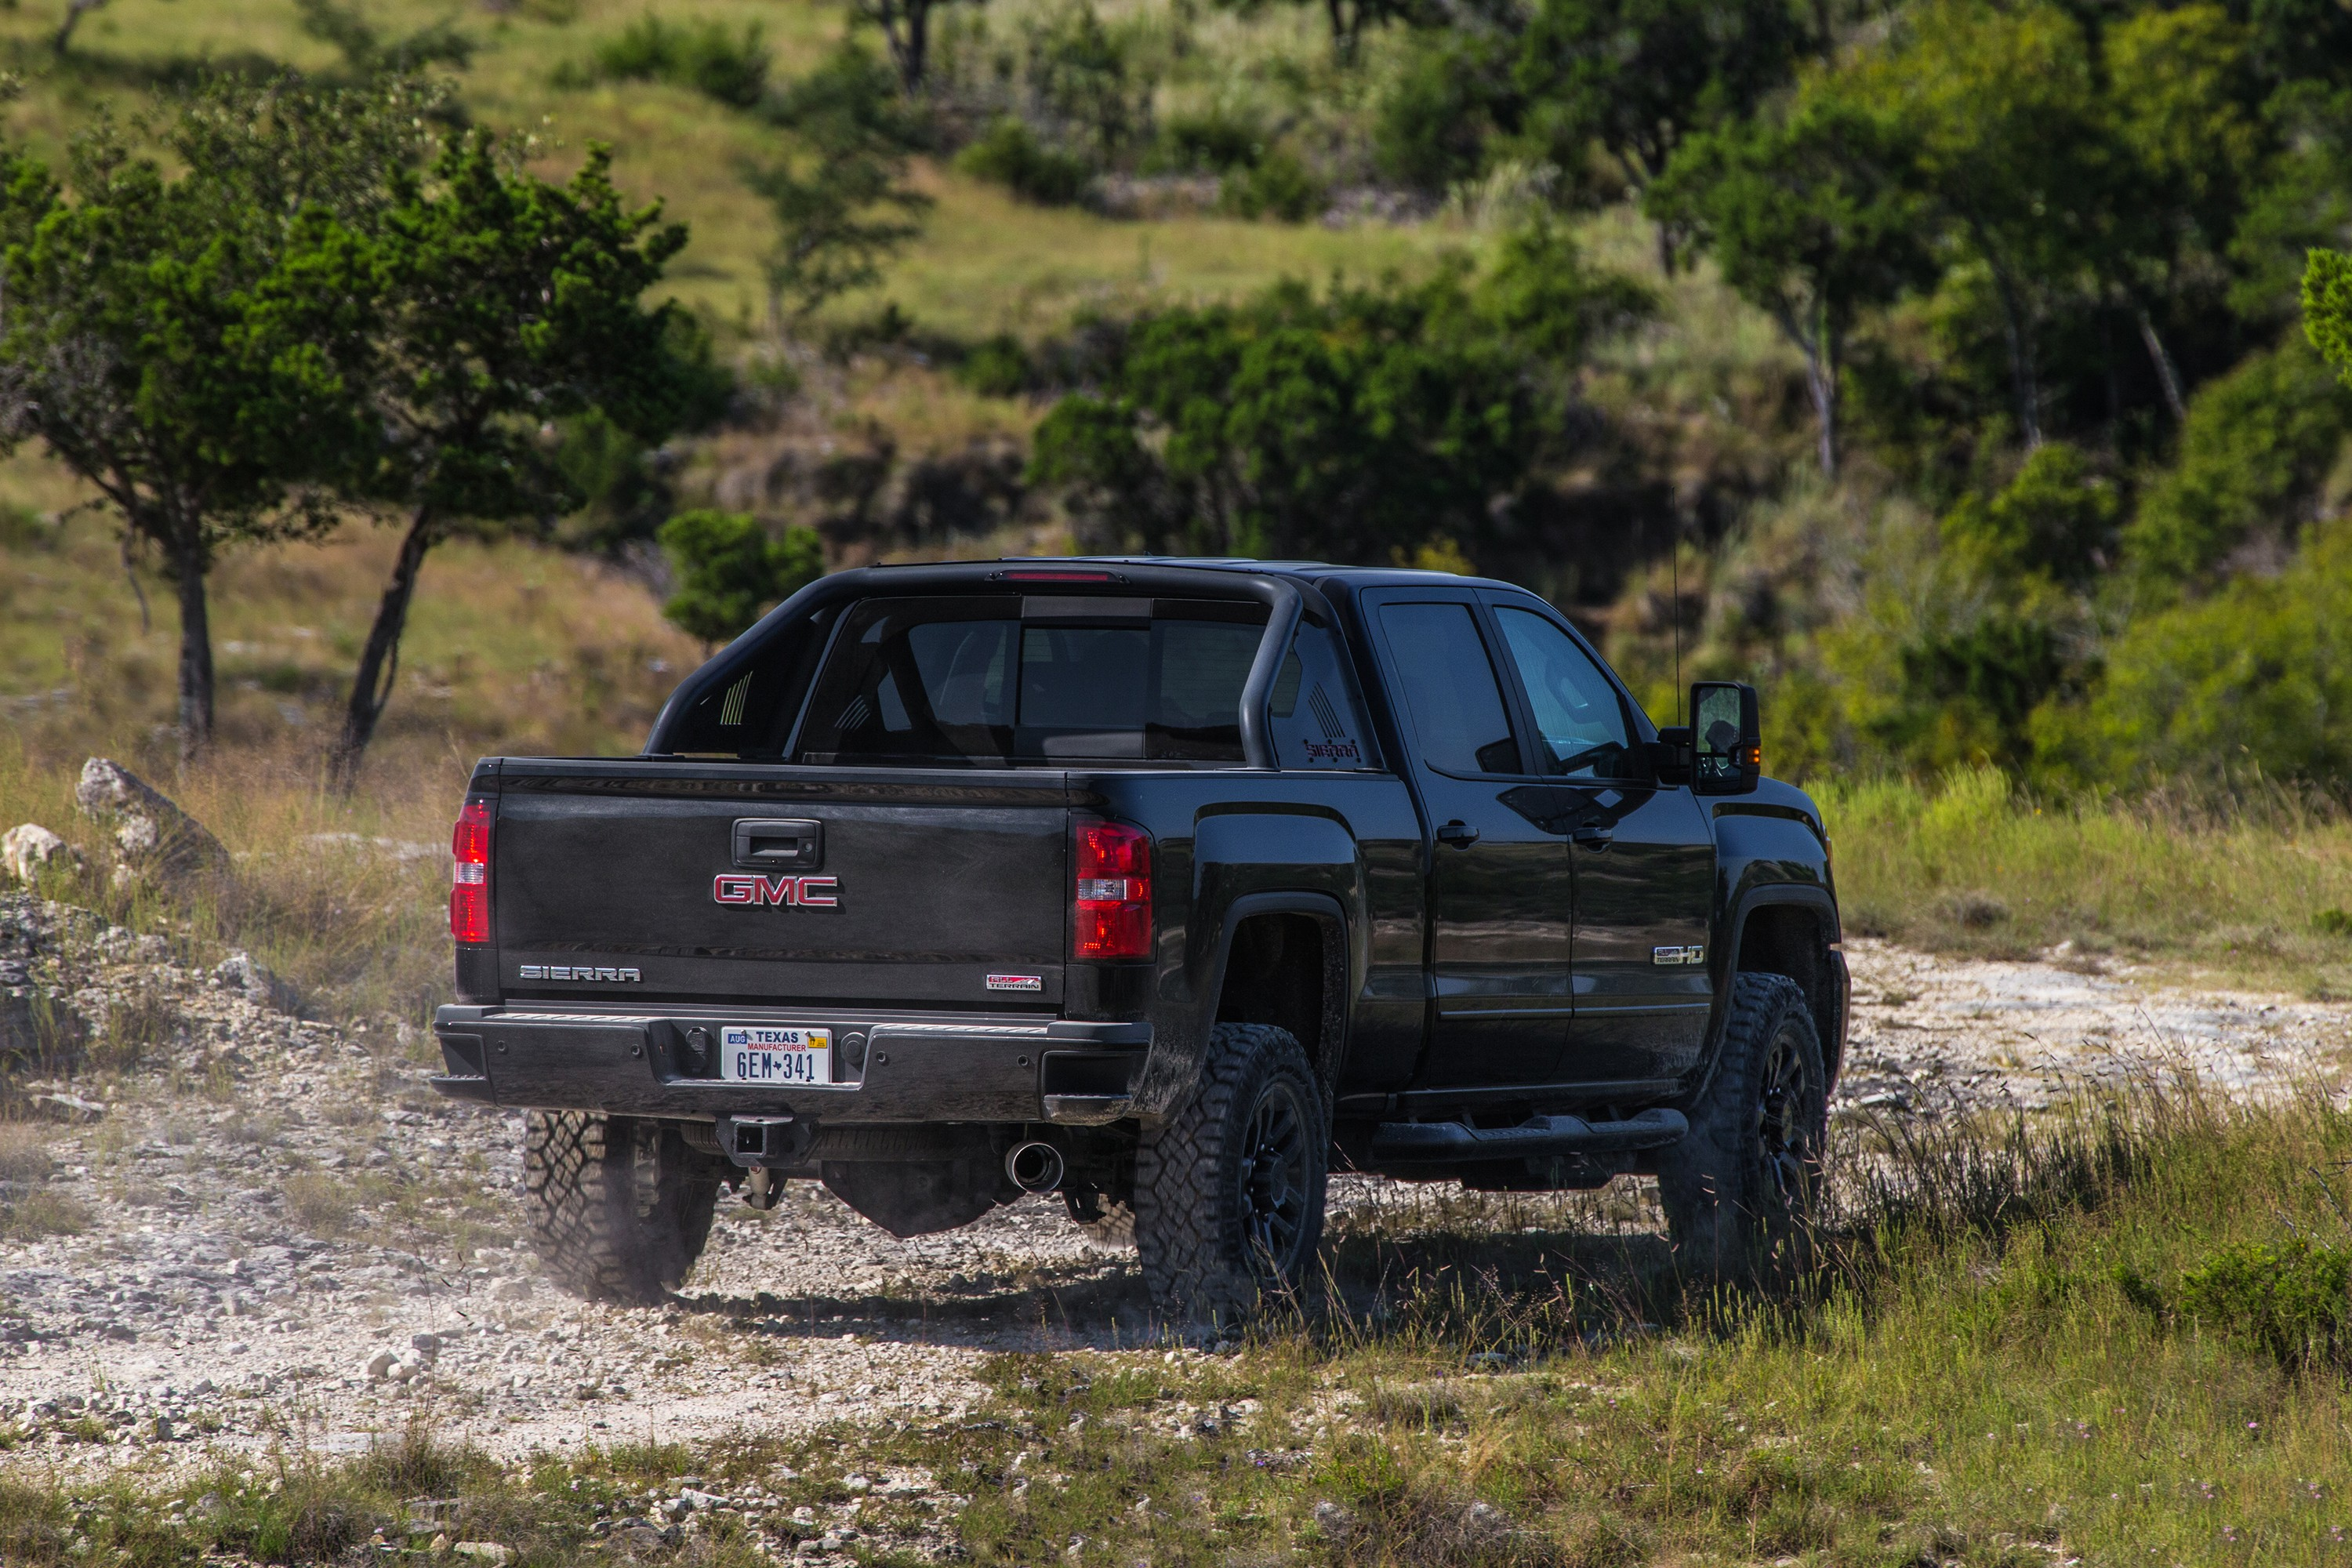 vehicles us media hd all pressroom united en galleries images states terrain allterrain gmc detail sierra photos pages content